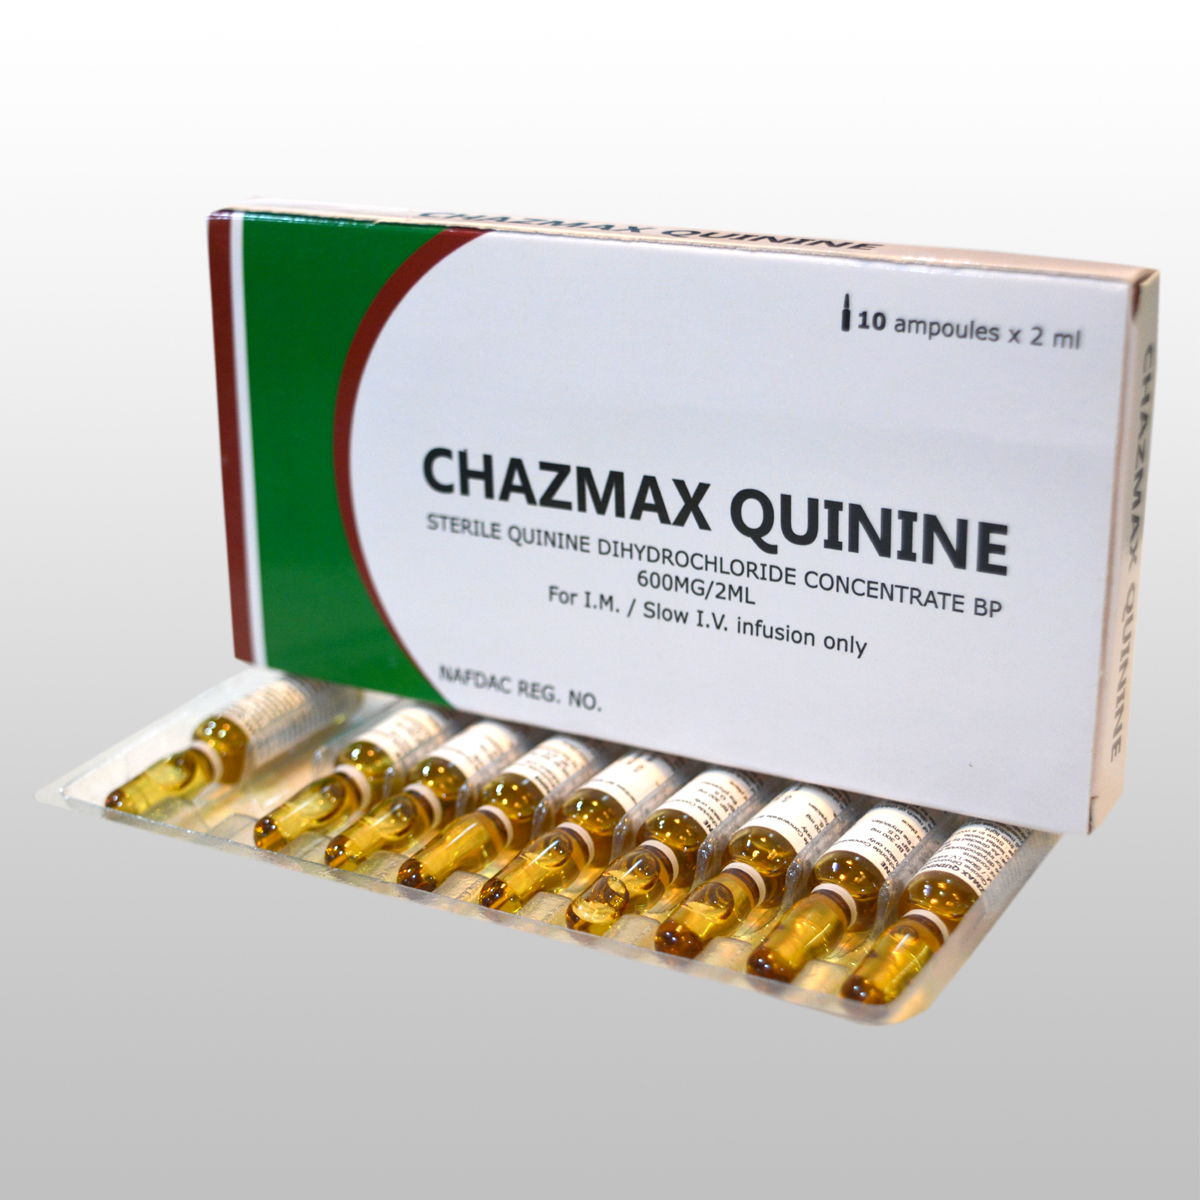 STERILE QUININE DIHYDROCHLORIDECONCENTRATE BP, 600MG/2ML